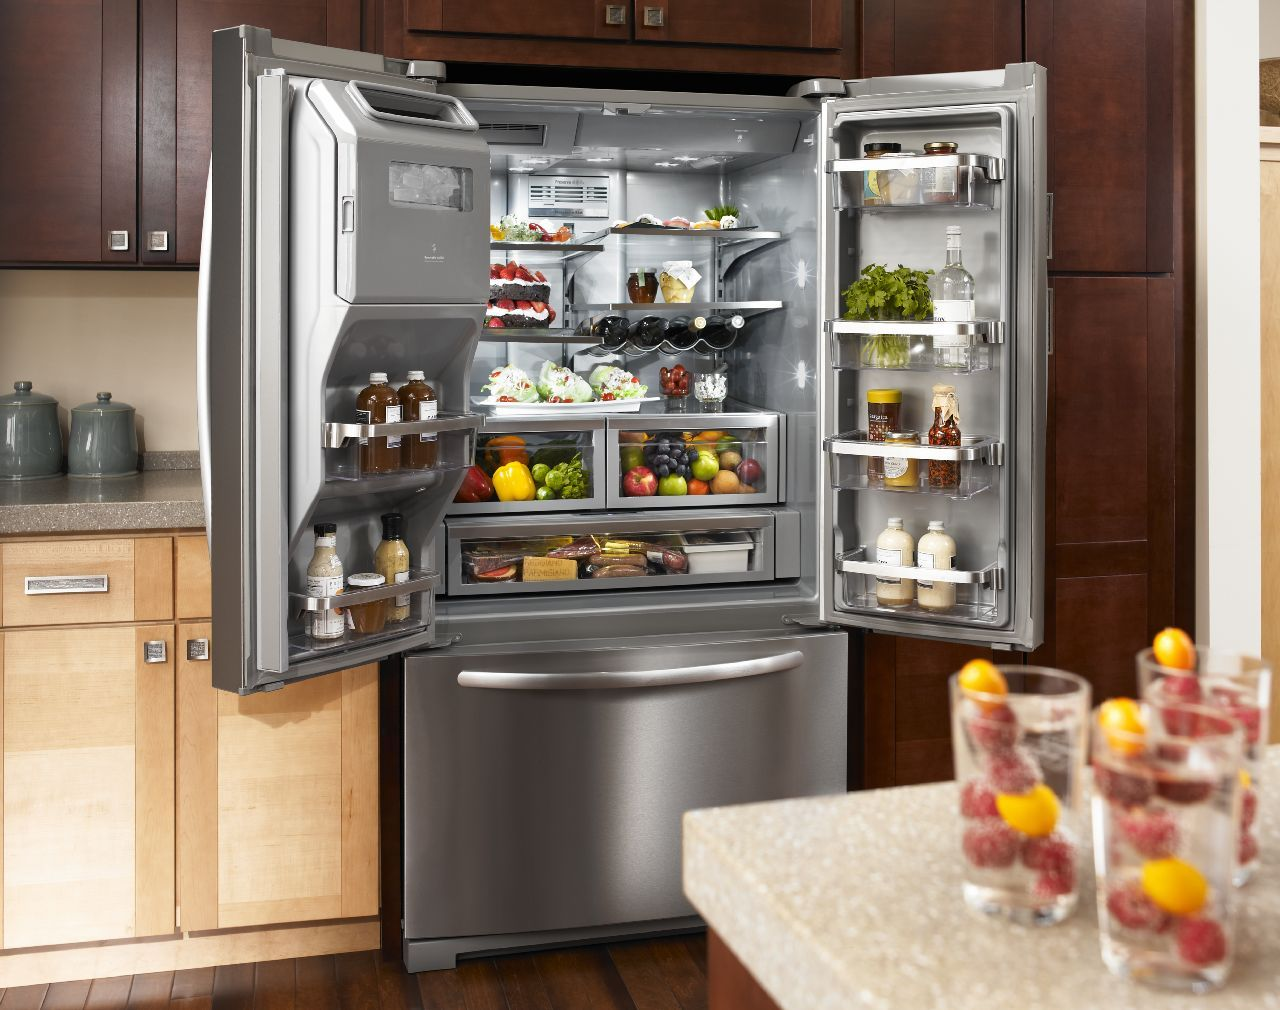 Giveaway KitchenAid® Refrigerator worth over 3,000